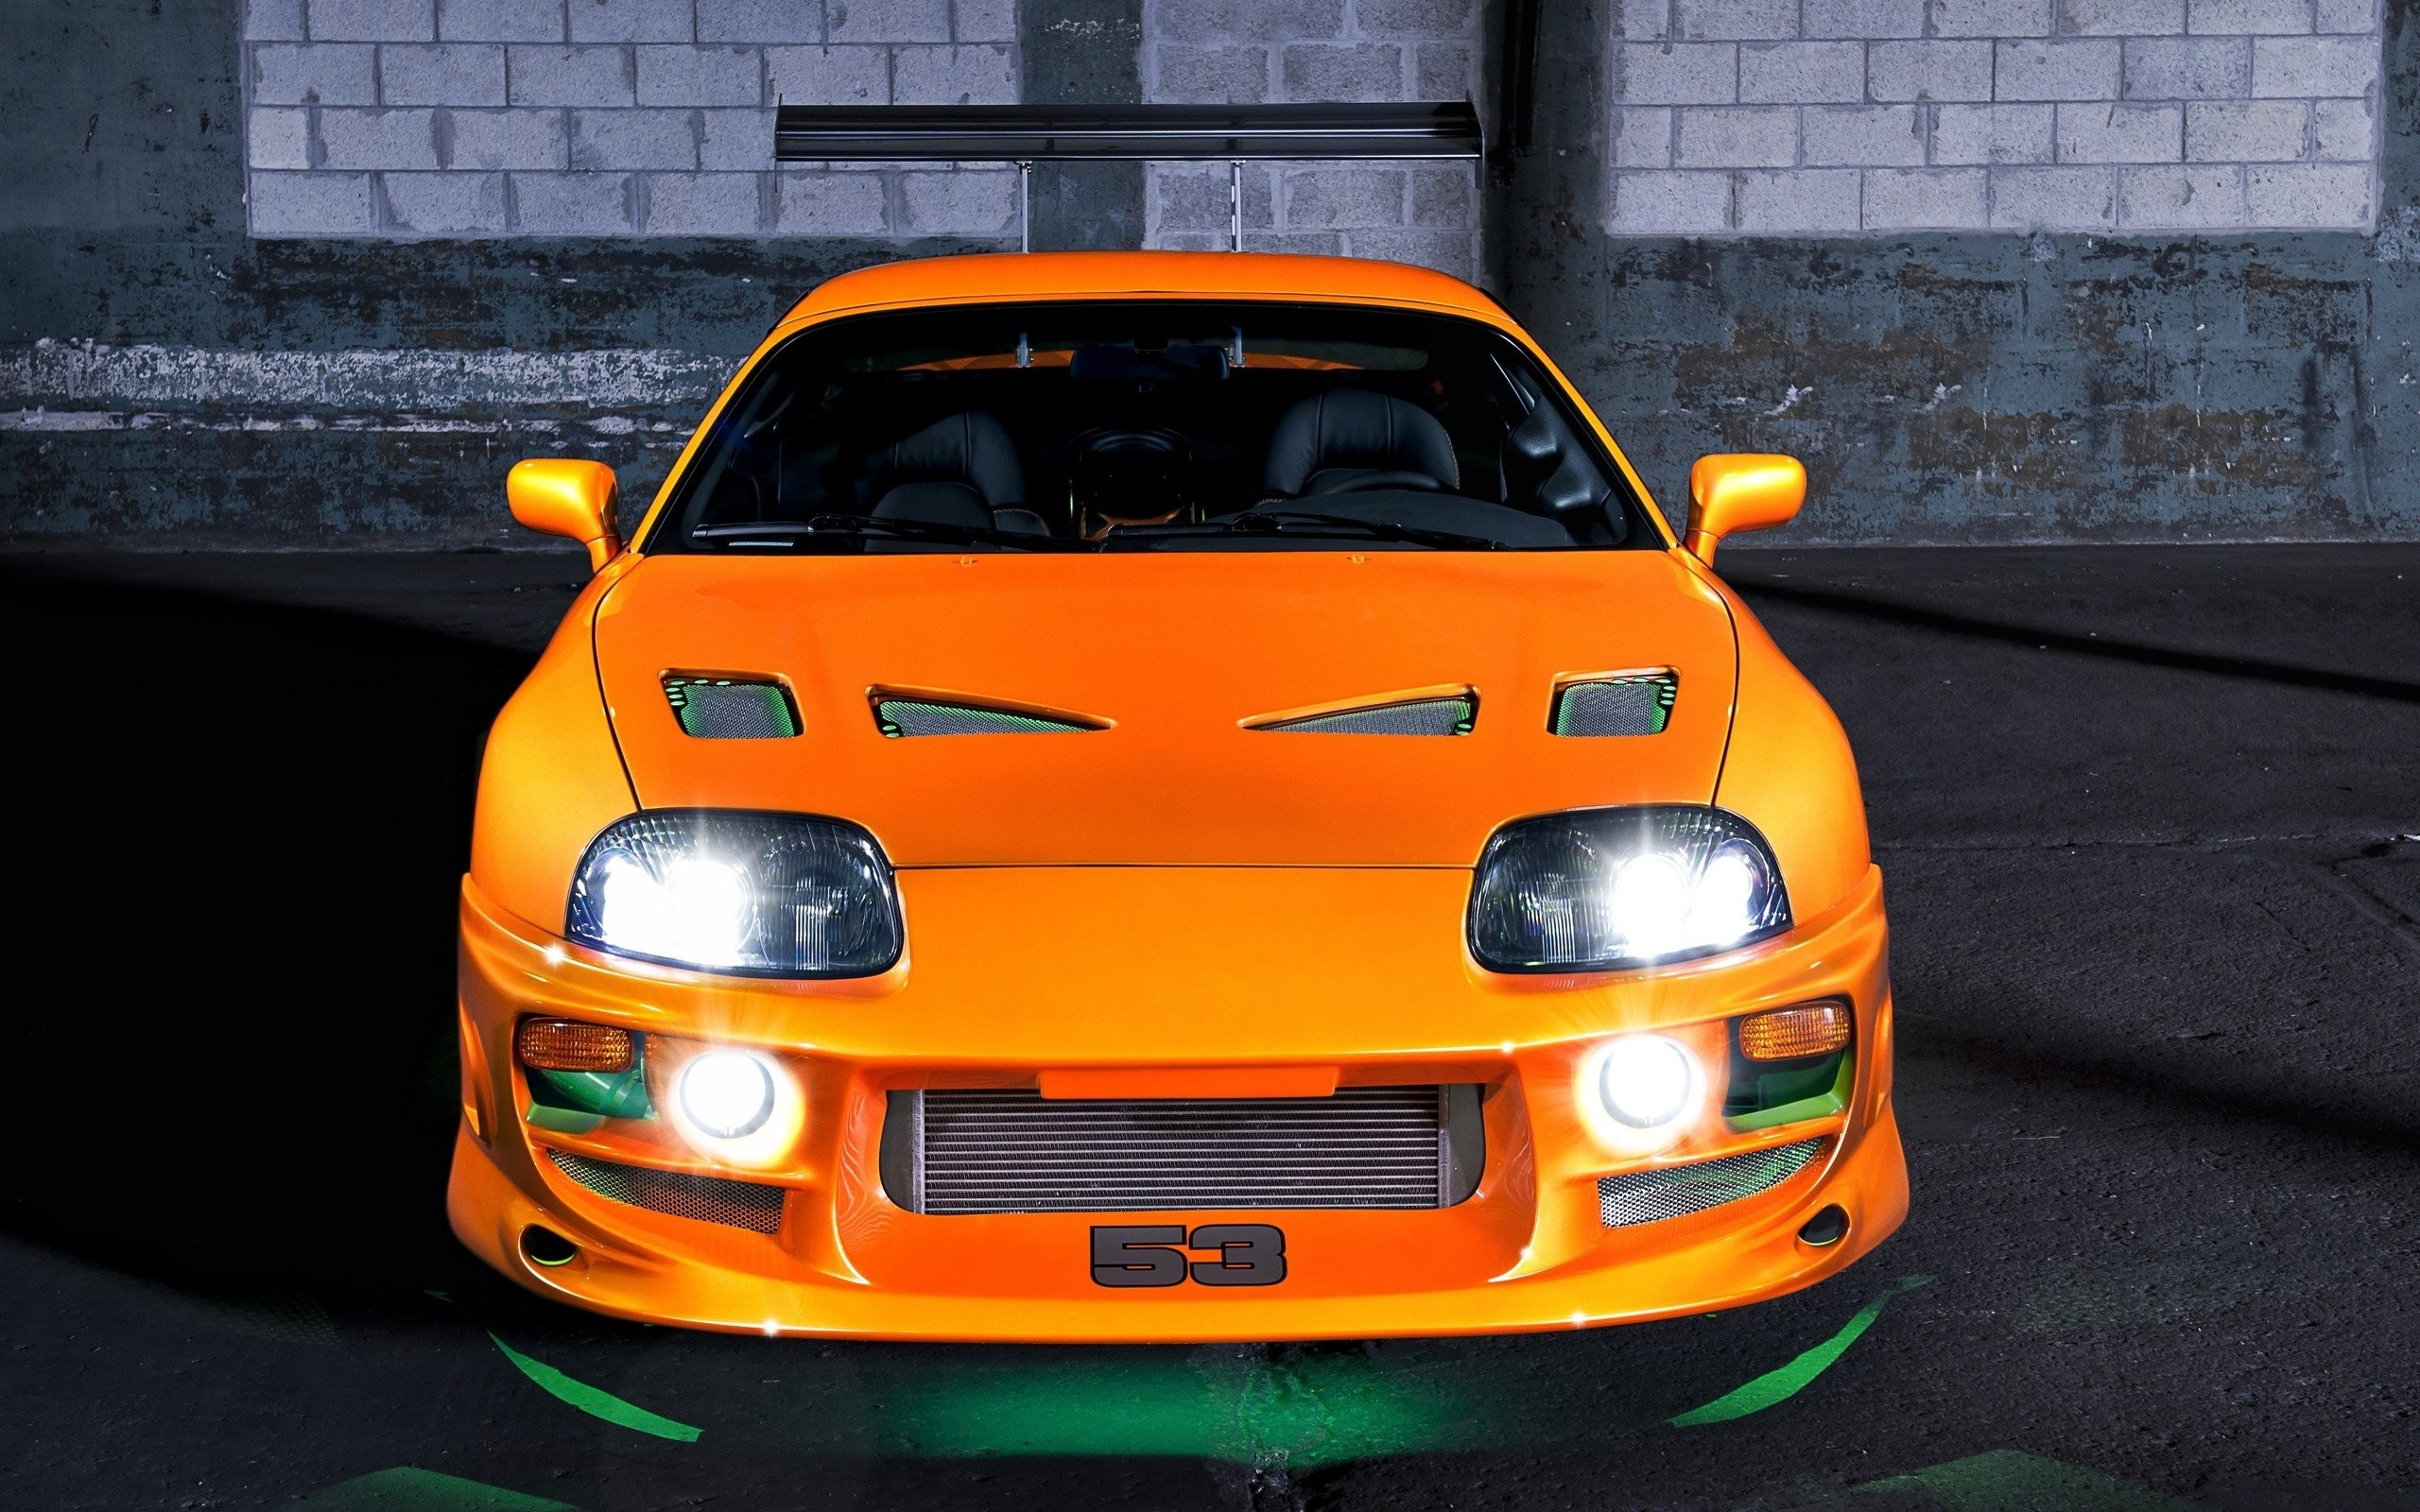 Cars Fast and Furious Toyota Supra JDM Japanese domestic market wallpaper |  | 288439 | WallpaperUP